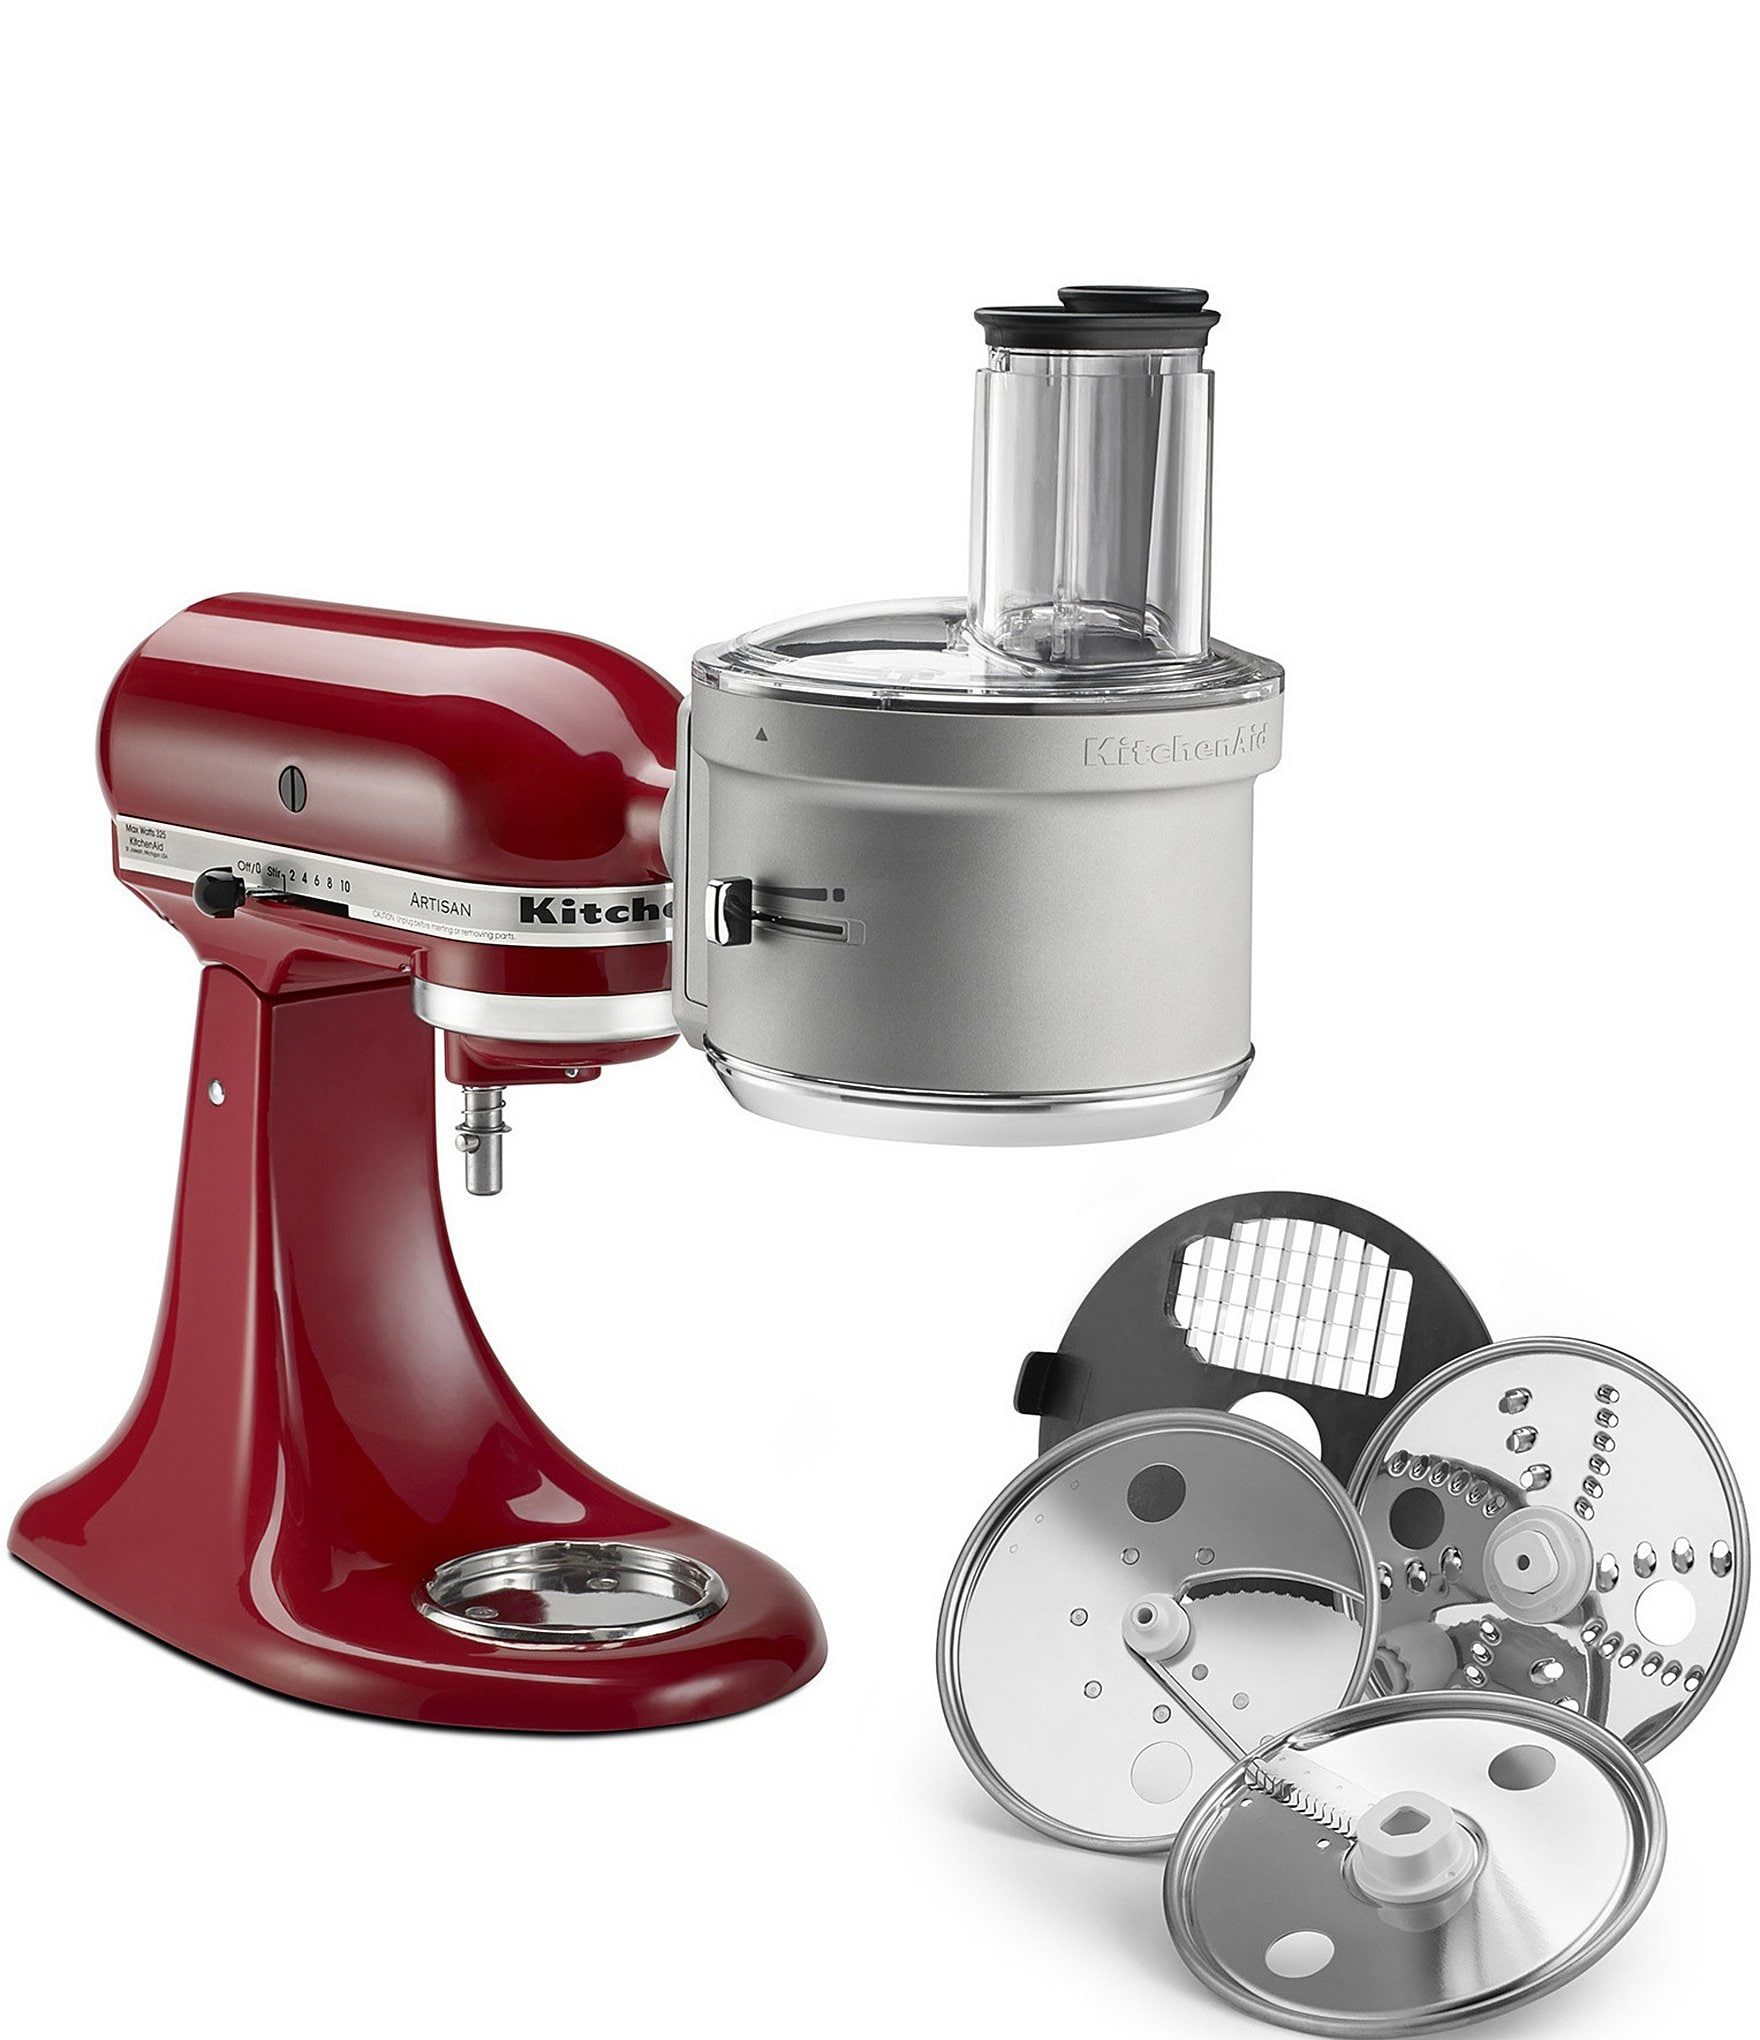 KitchenAid Dicing & Food Processor Stand Mixer Attachment Kit | Dillard's